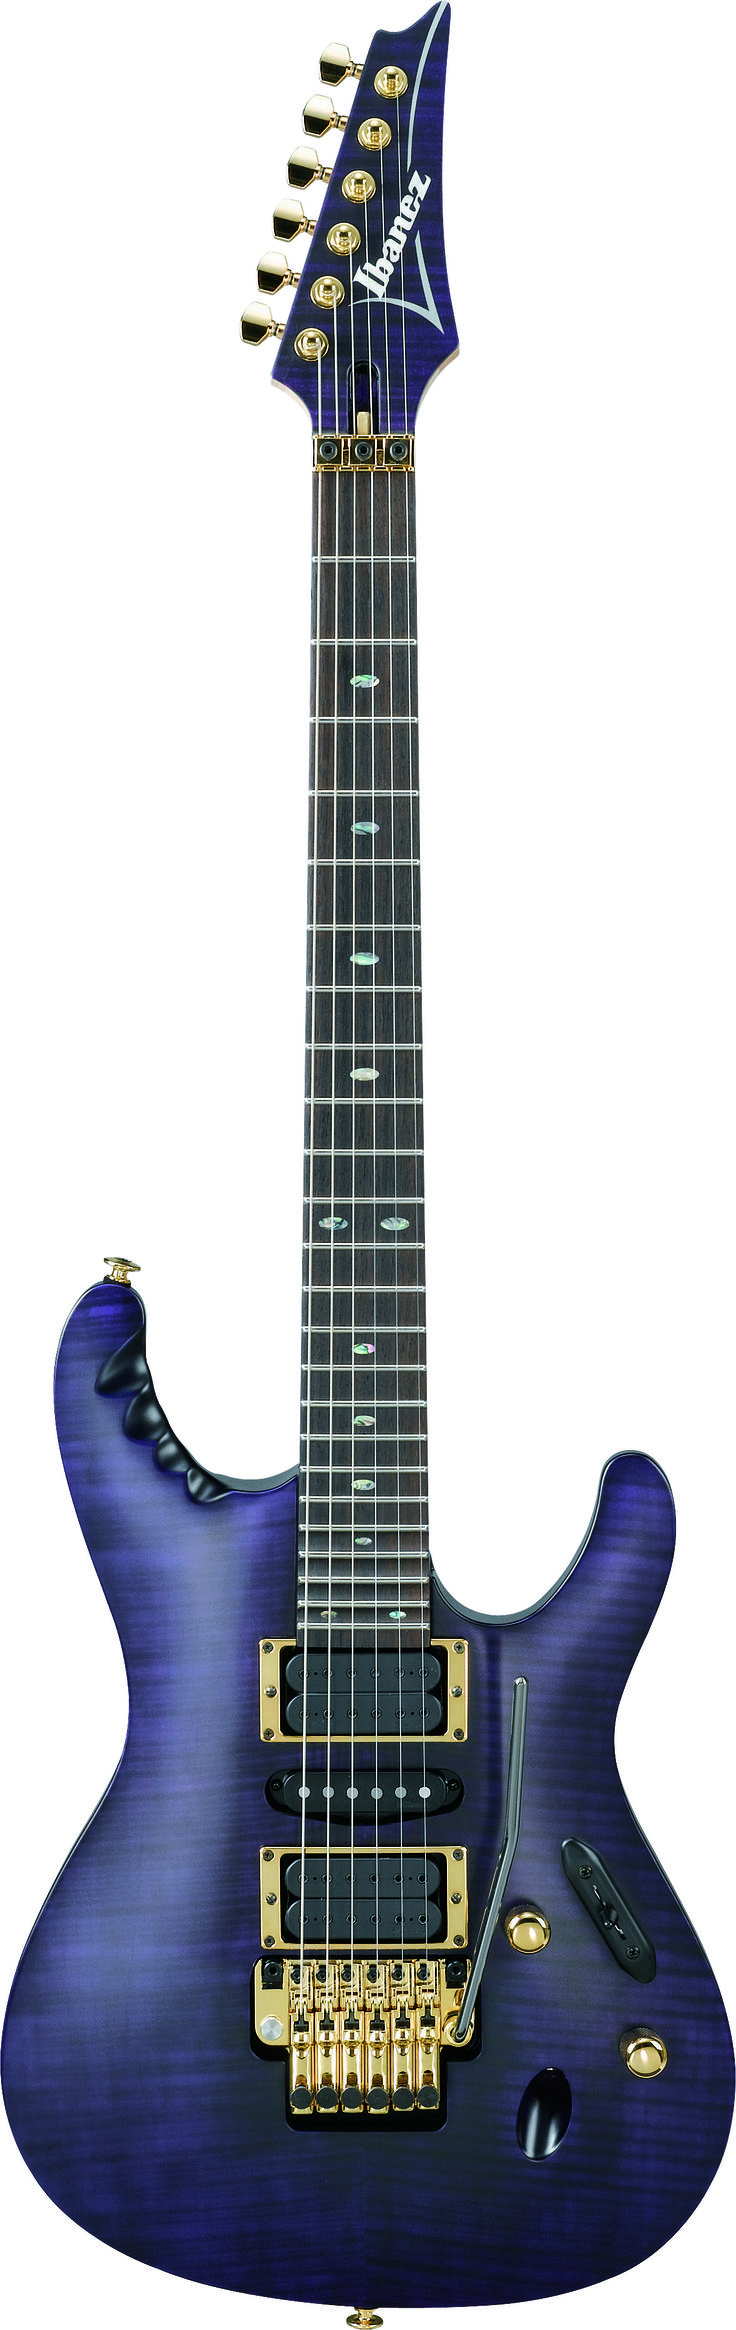 211 best Guitars images on Pinterest Electric guitars Guitars and